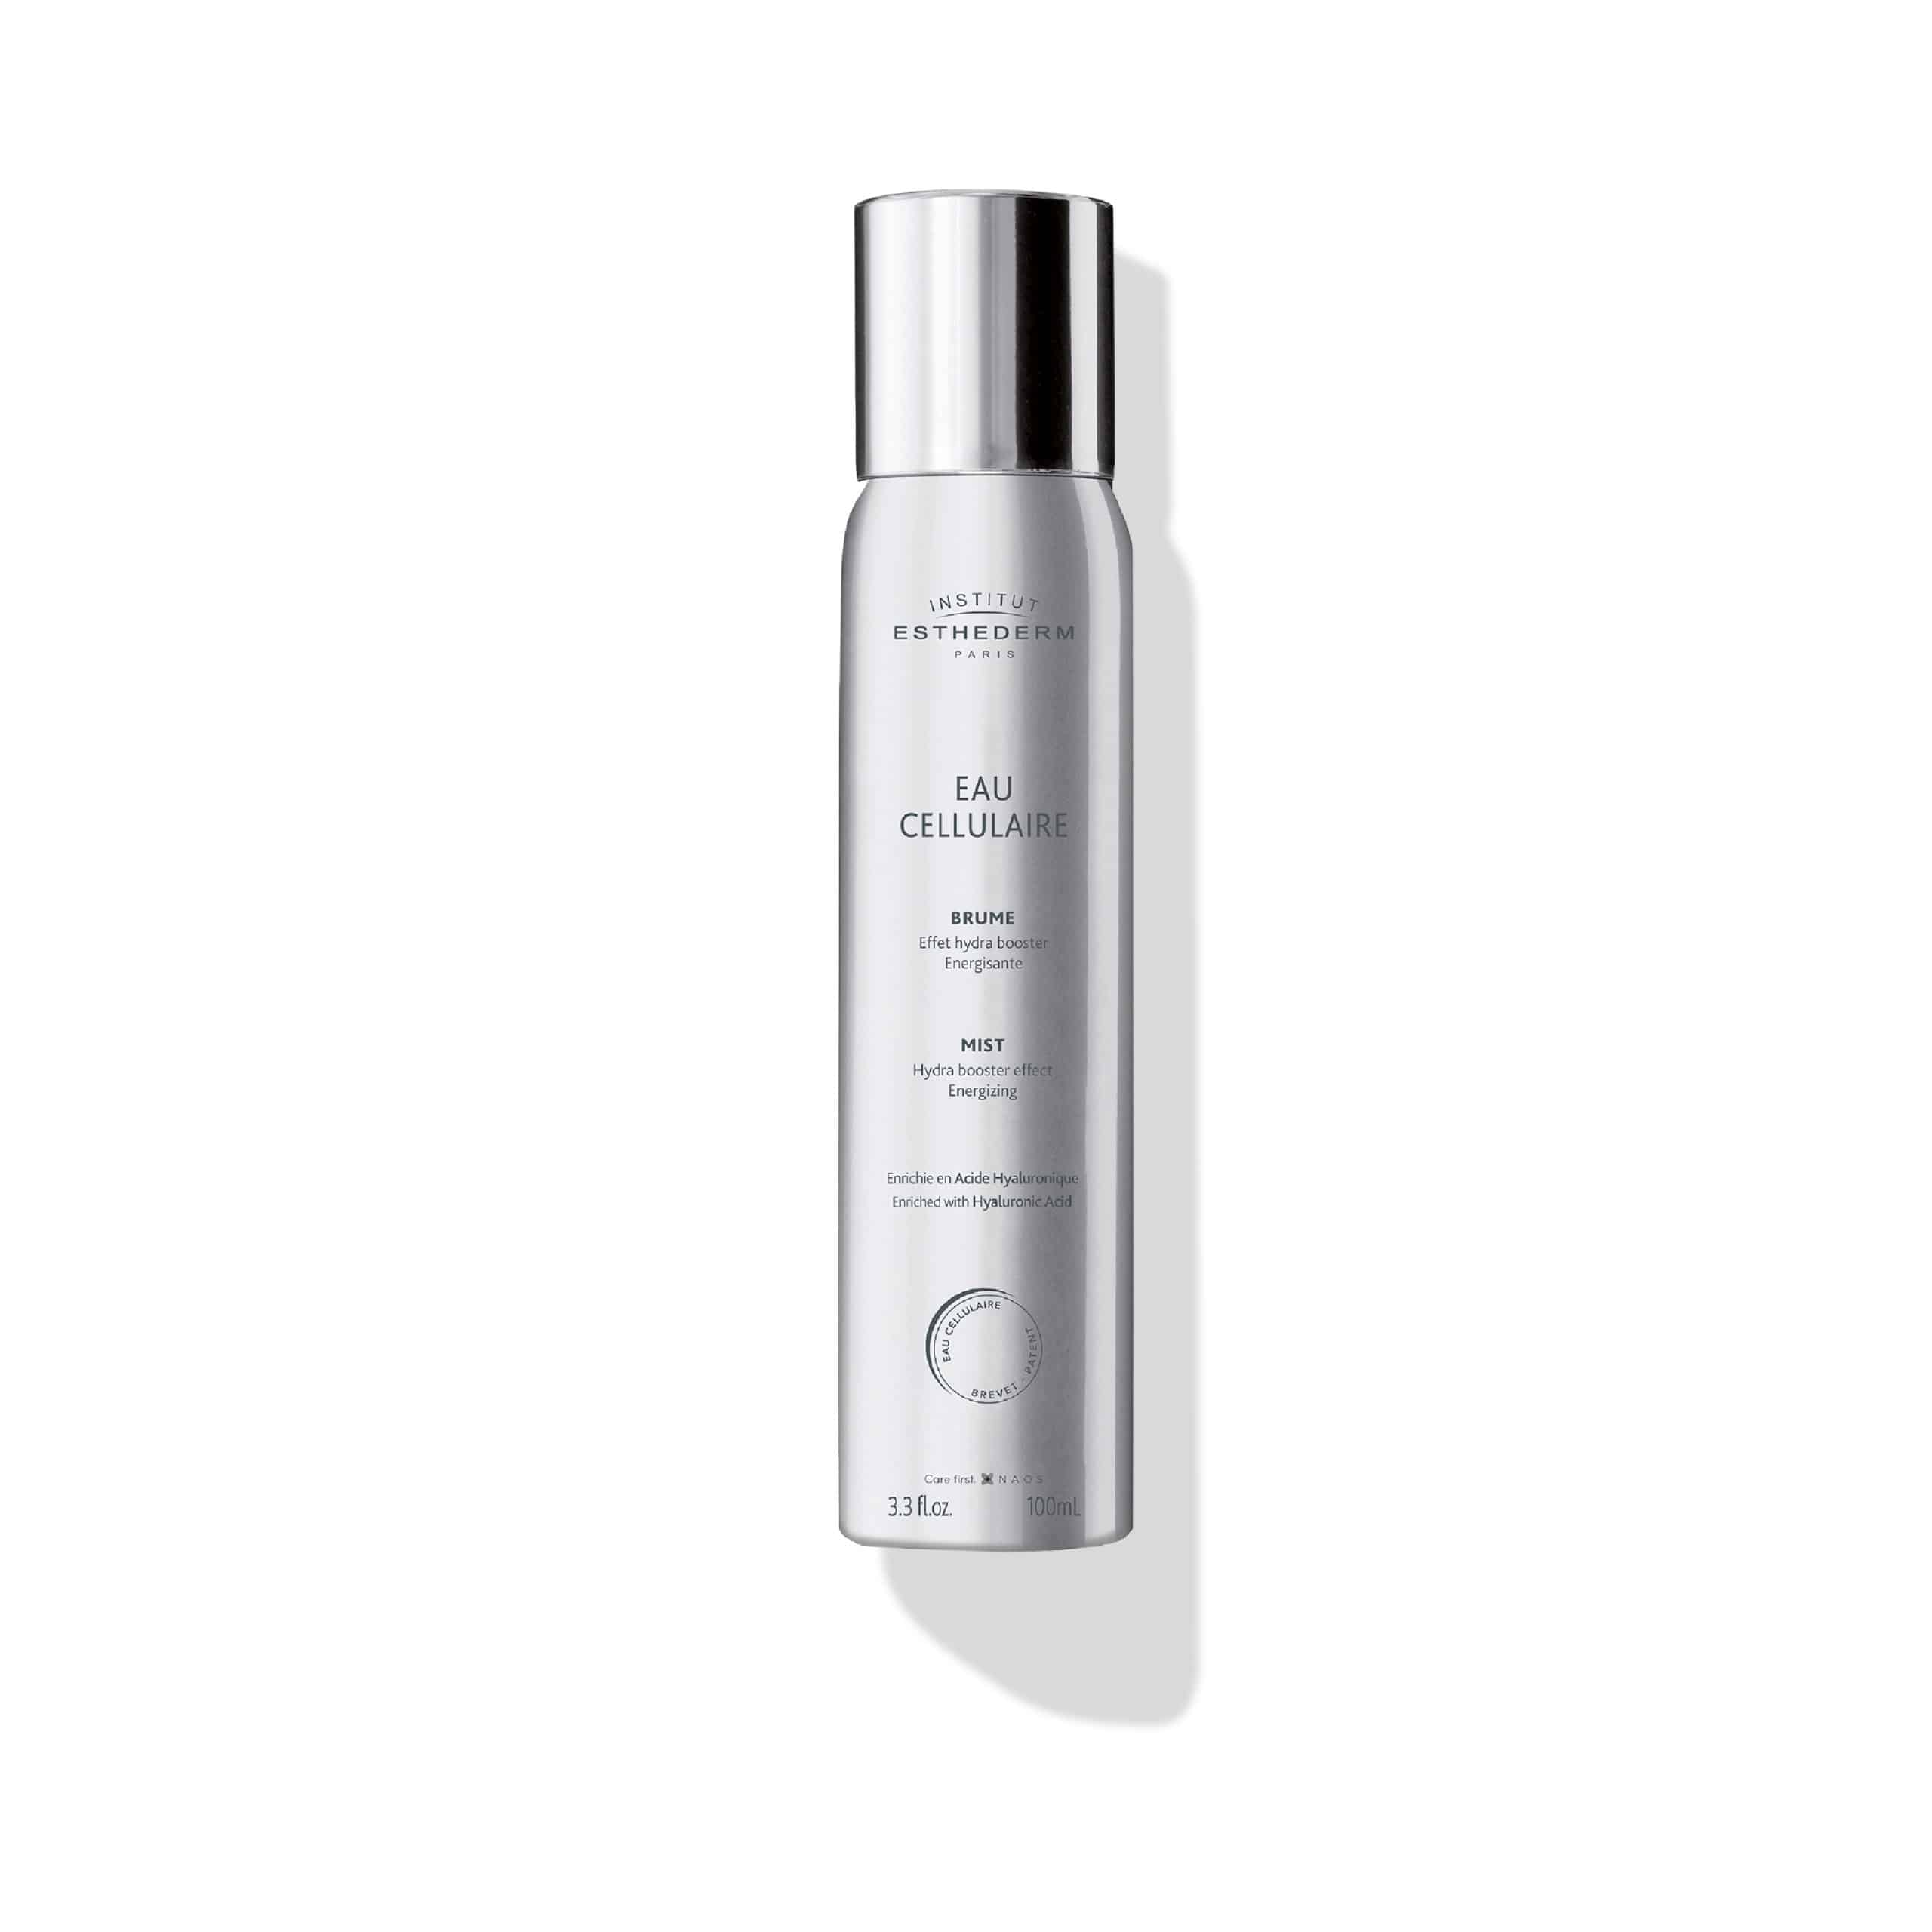 ESTHEDERM product photo, Cellular Water Mist 100ml, facial mist, replenishing and revitalizing spray, Hyaluronic Acid